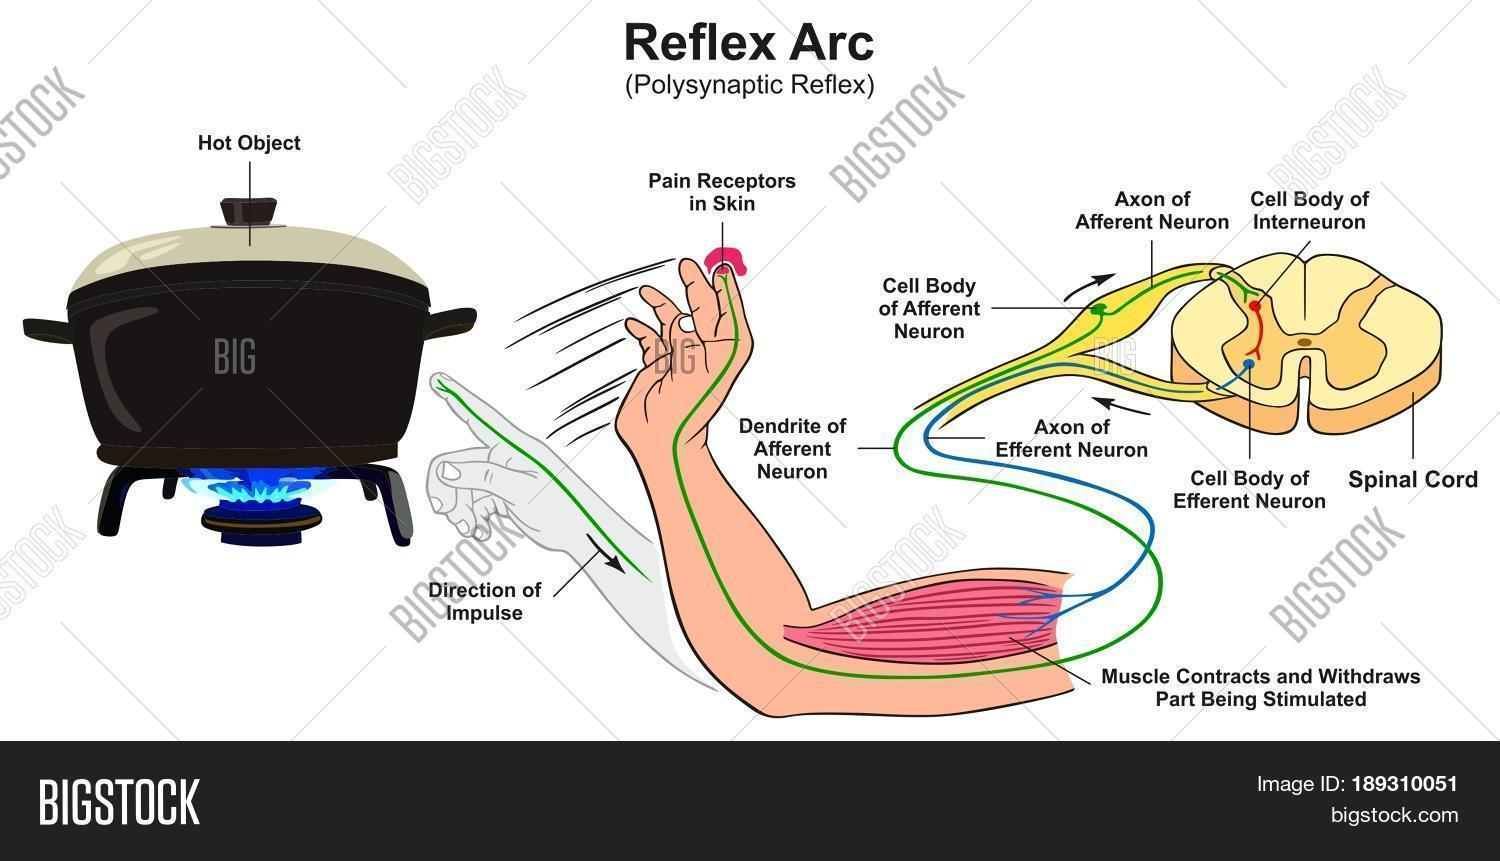 diagram of a simple reflex arc 1999 s10 stereo wiring infographic image and photo bigstock